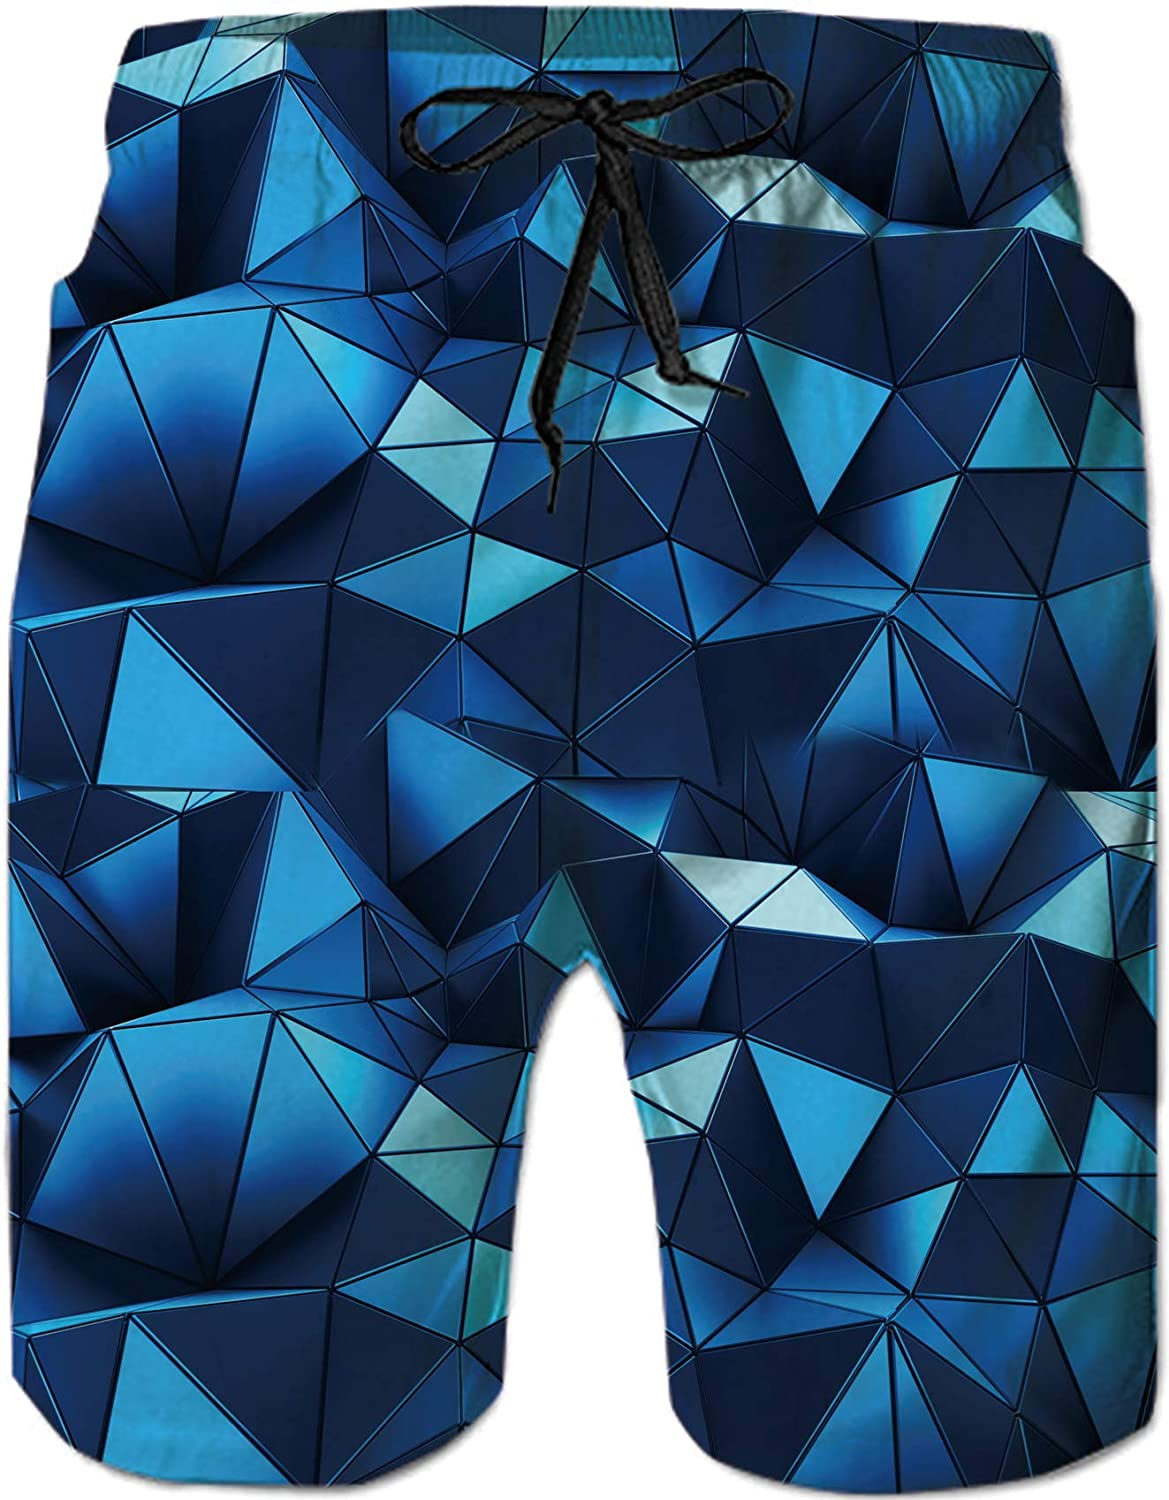 UNIFACO Men's Printed Swim Trunks Quick Dry Elastic Waistband Bathing Suits Board Shorts with Pockets S-XXL